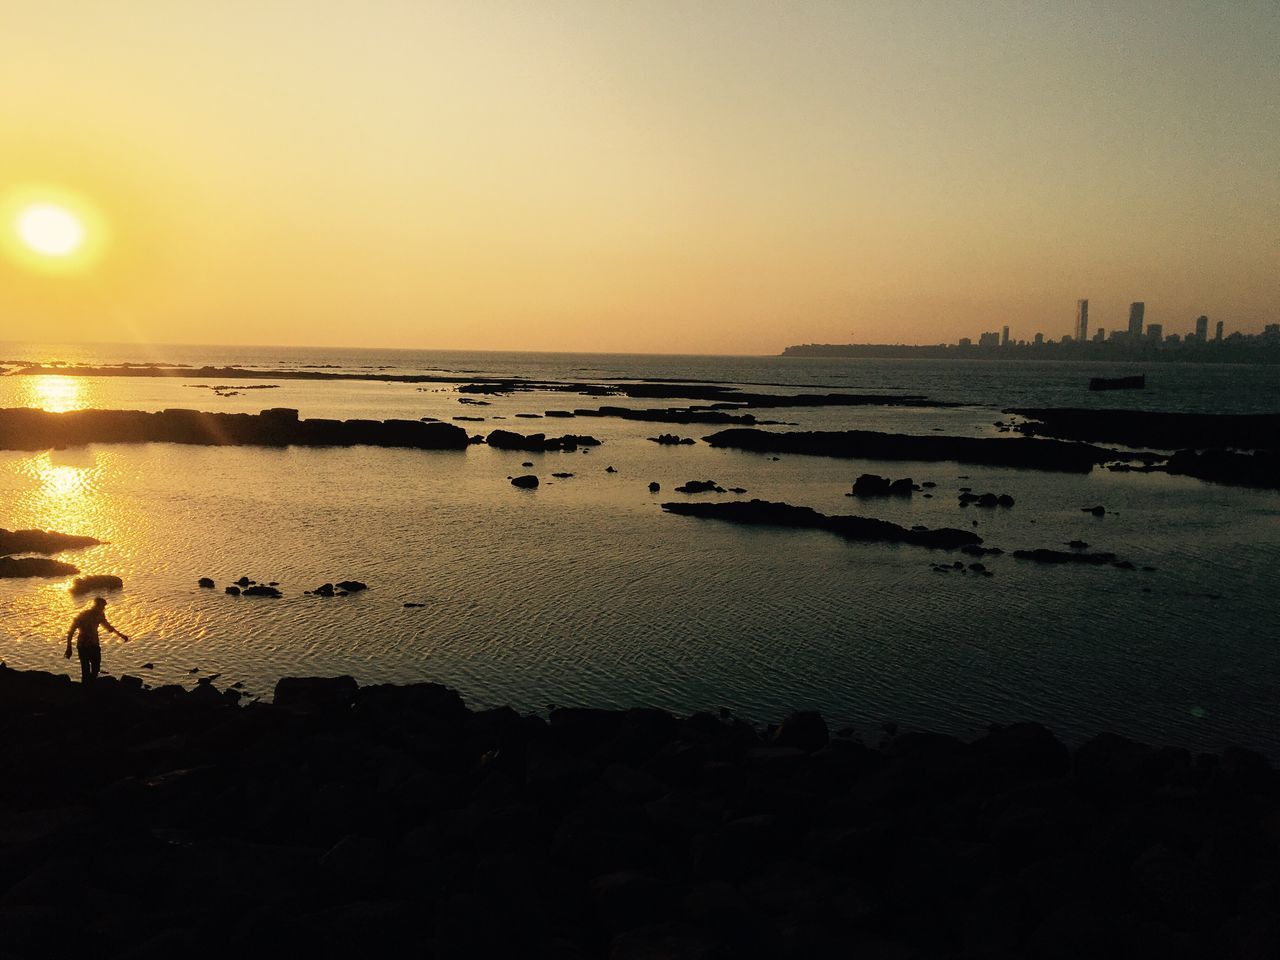 sunset, water, reflection, silhouette, sea, nature, scenics, beauty in nature, sky, outdoors, tranquility, sun, tranquil scene, travel destinations, beach, clear sky, no people, horizon over water, building exterior, architecture, city, day